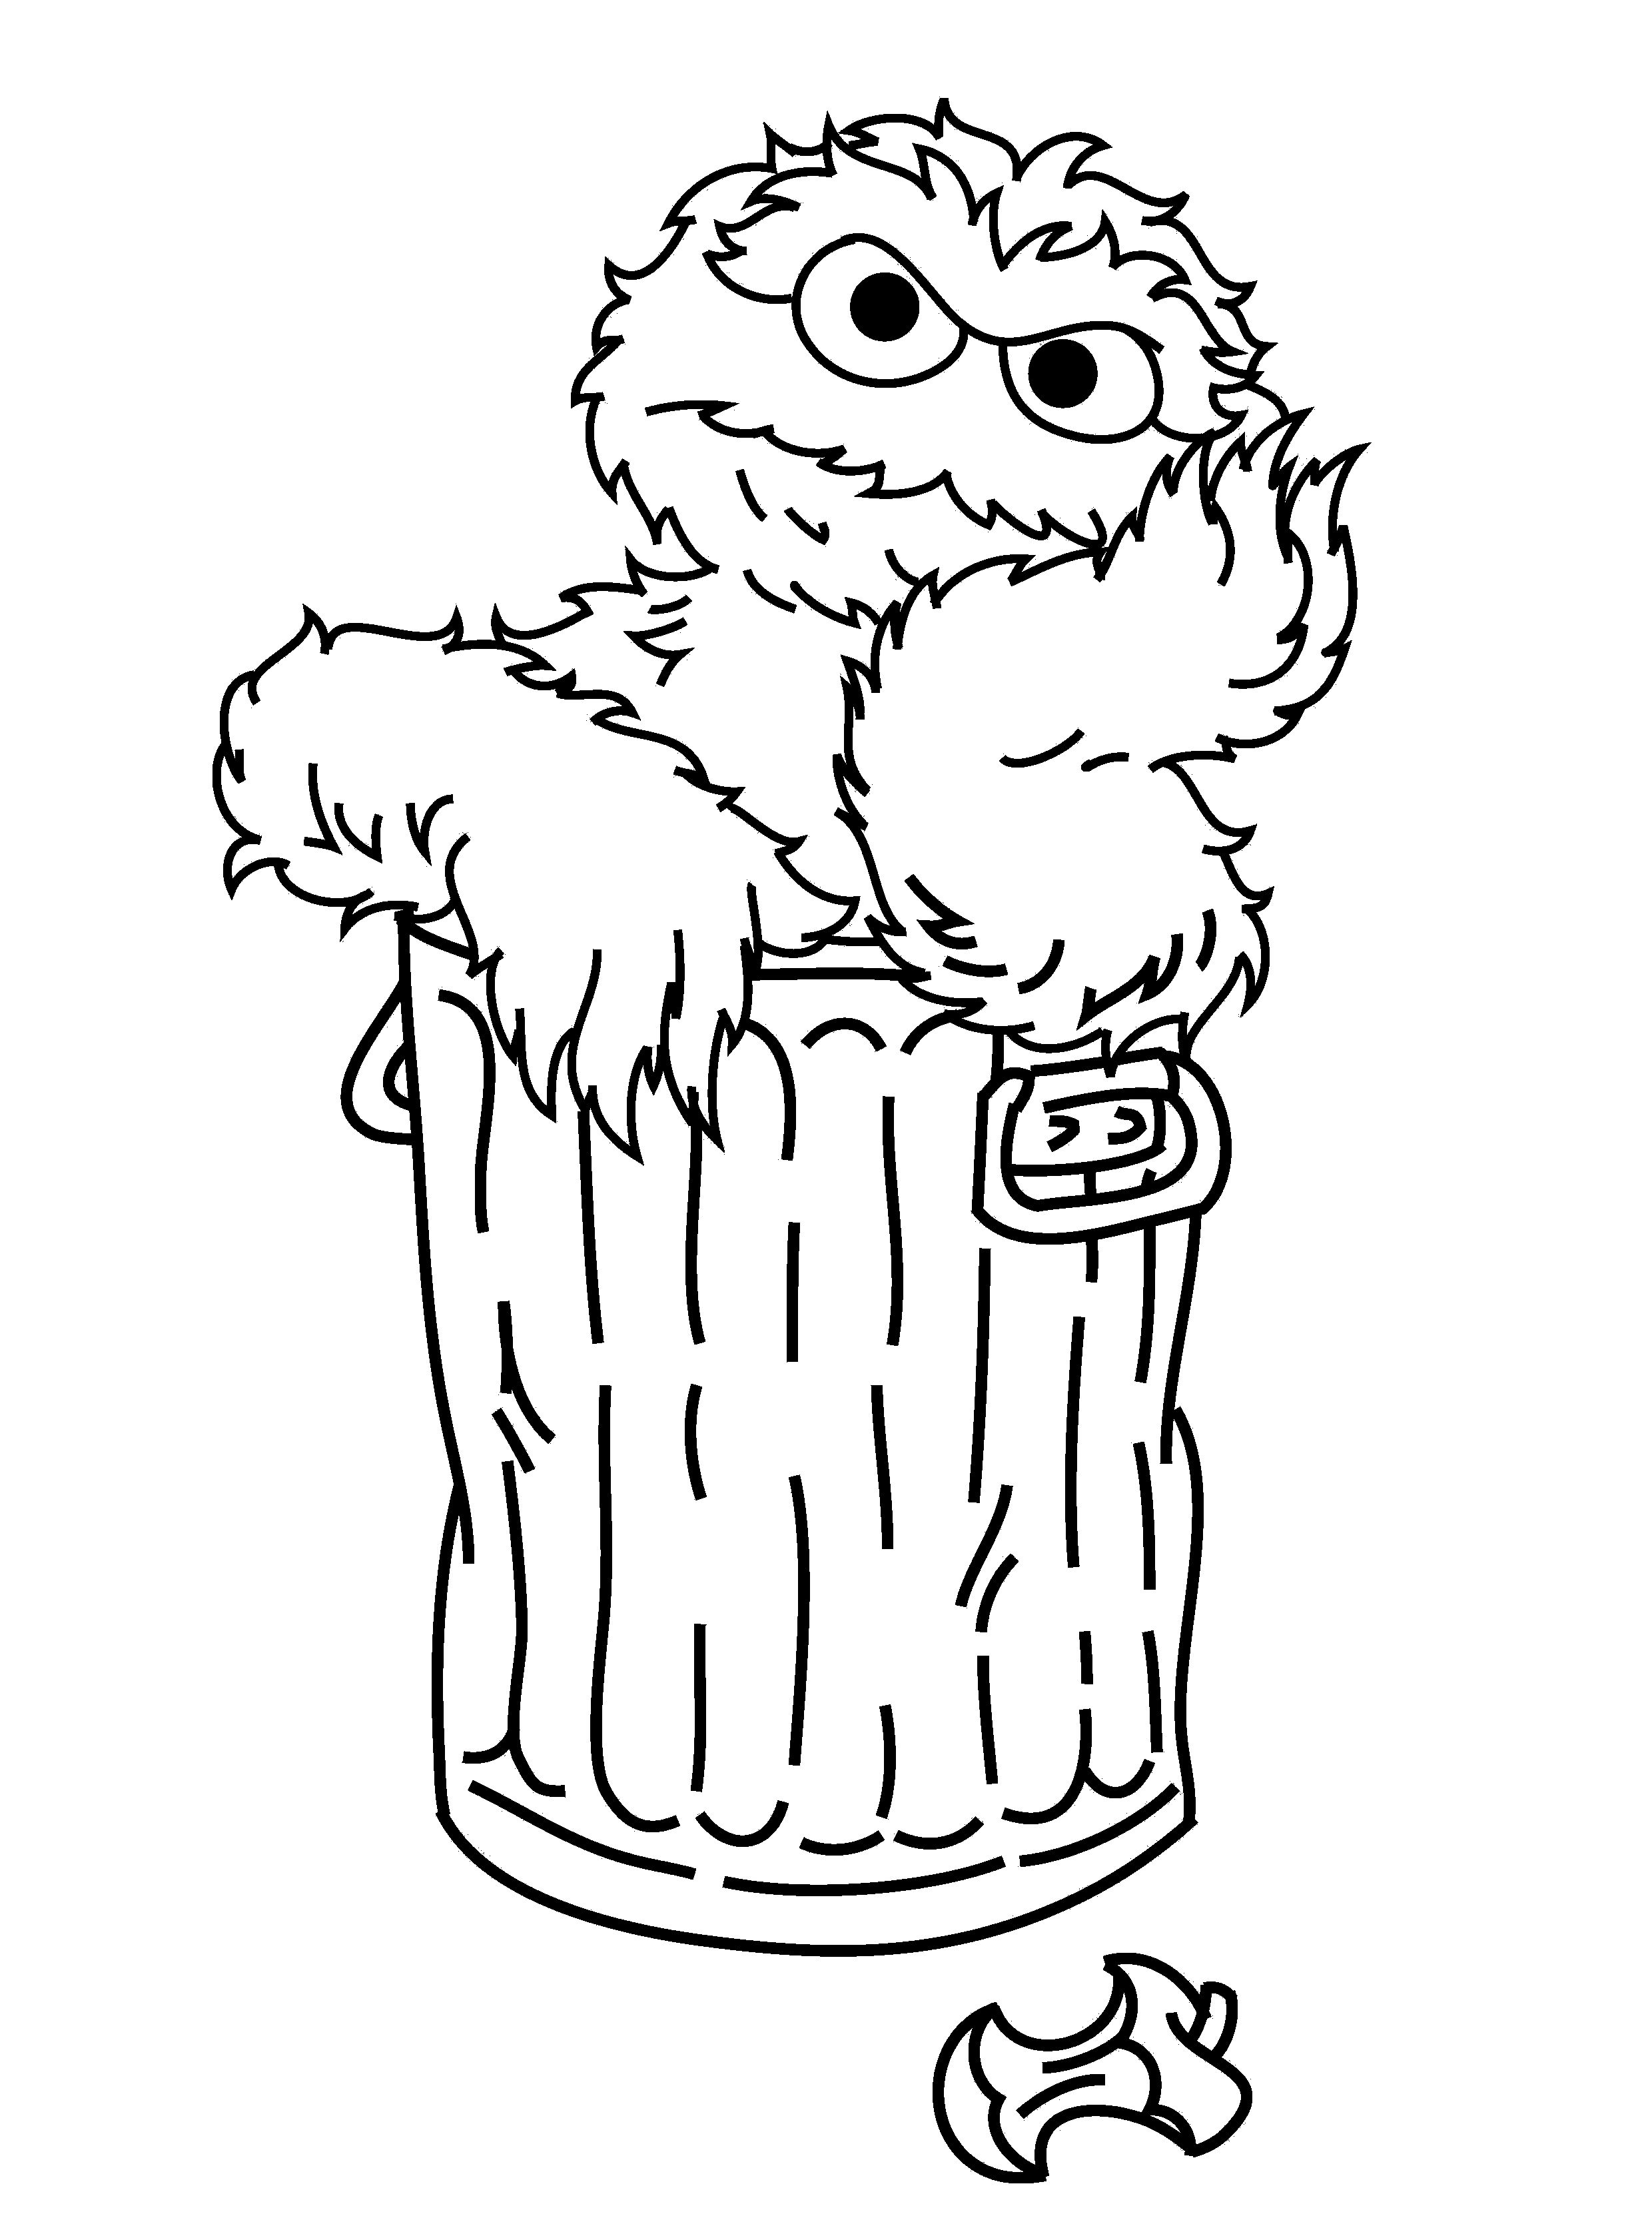 Ausmalbilder Sesamstraße Geburtstag : Oscar The Grouch Daydream Sesame Street Coloring Pages Pinterest